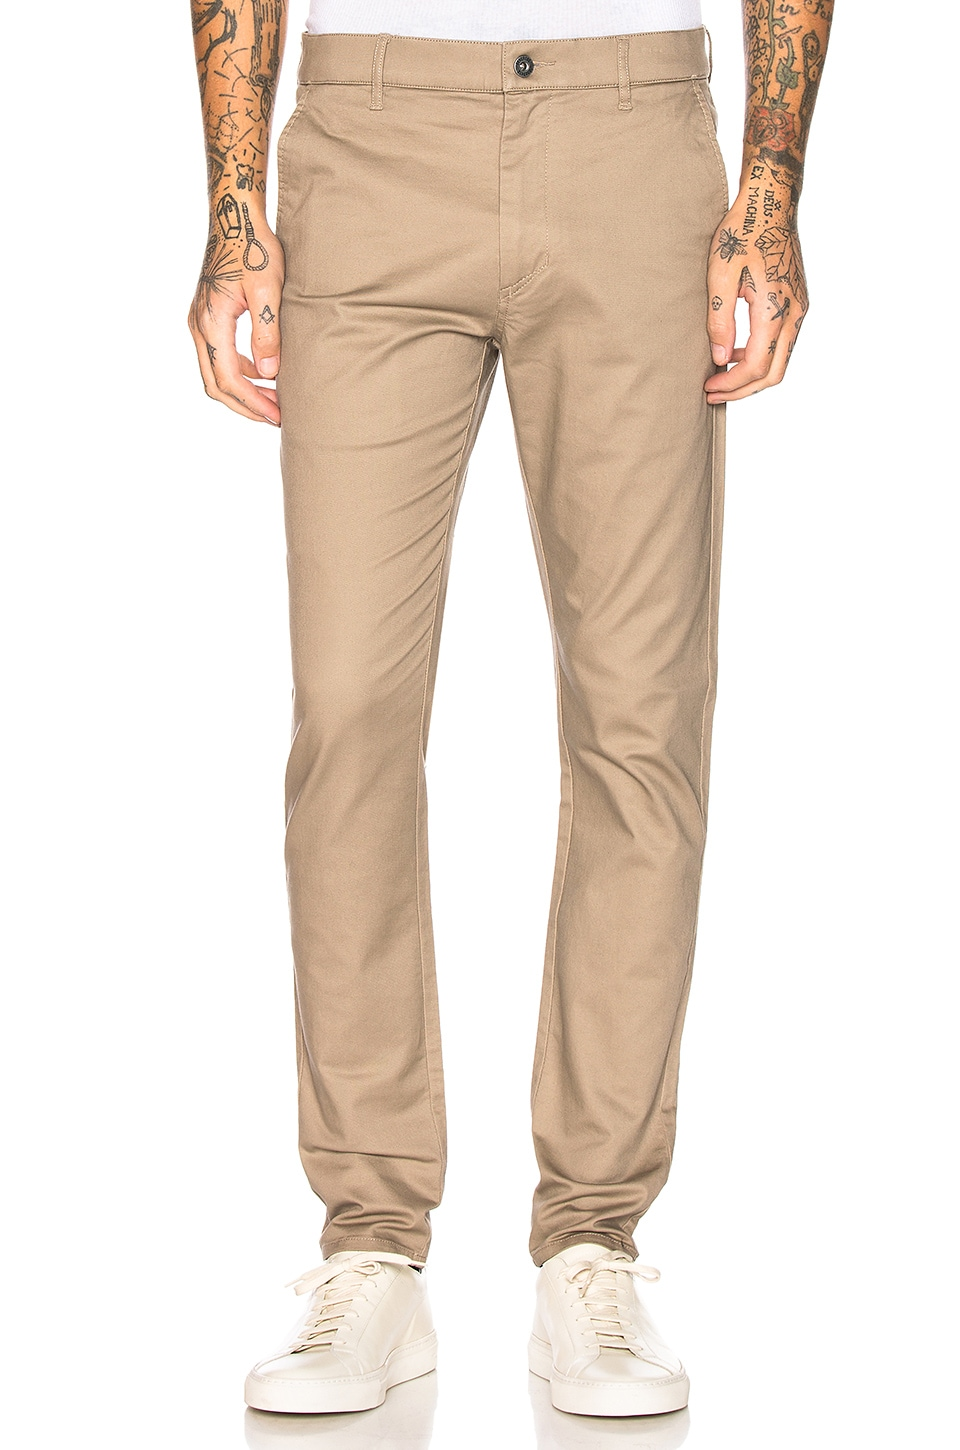 Zanerobe Snapshot Chino in Tan